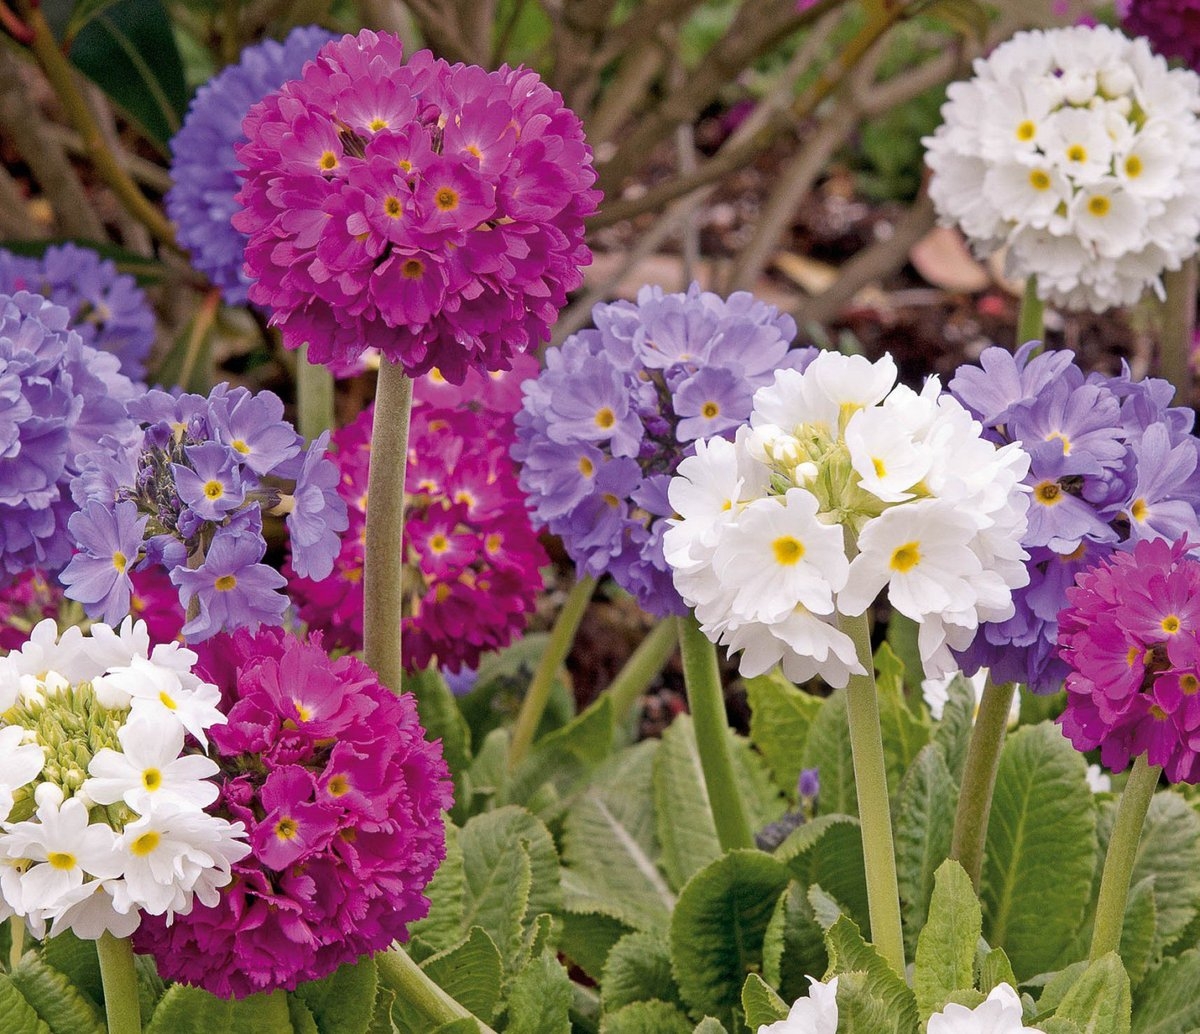 The fine-toothed primrose is a perennial primrose that features a serrated petal on the flower. This species has many subspecies, the color of which is white, red, and even purple.  #flower #flowerstagram #flores #flowersofinstagram #florist #outdoor #flowerpower https://t.co/kvAx8Skf14